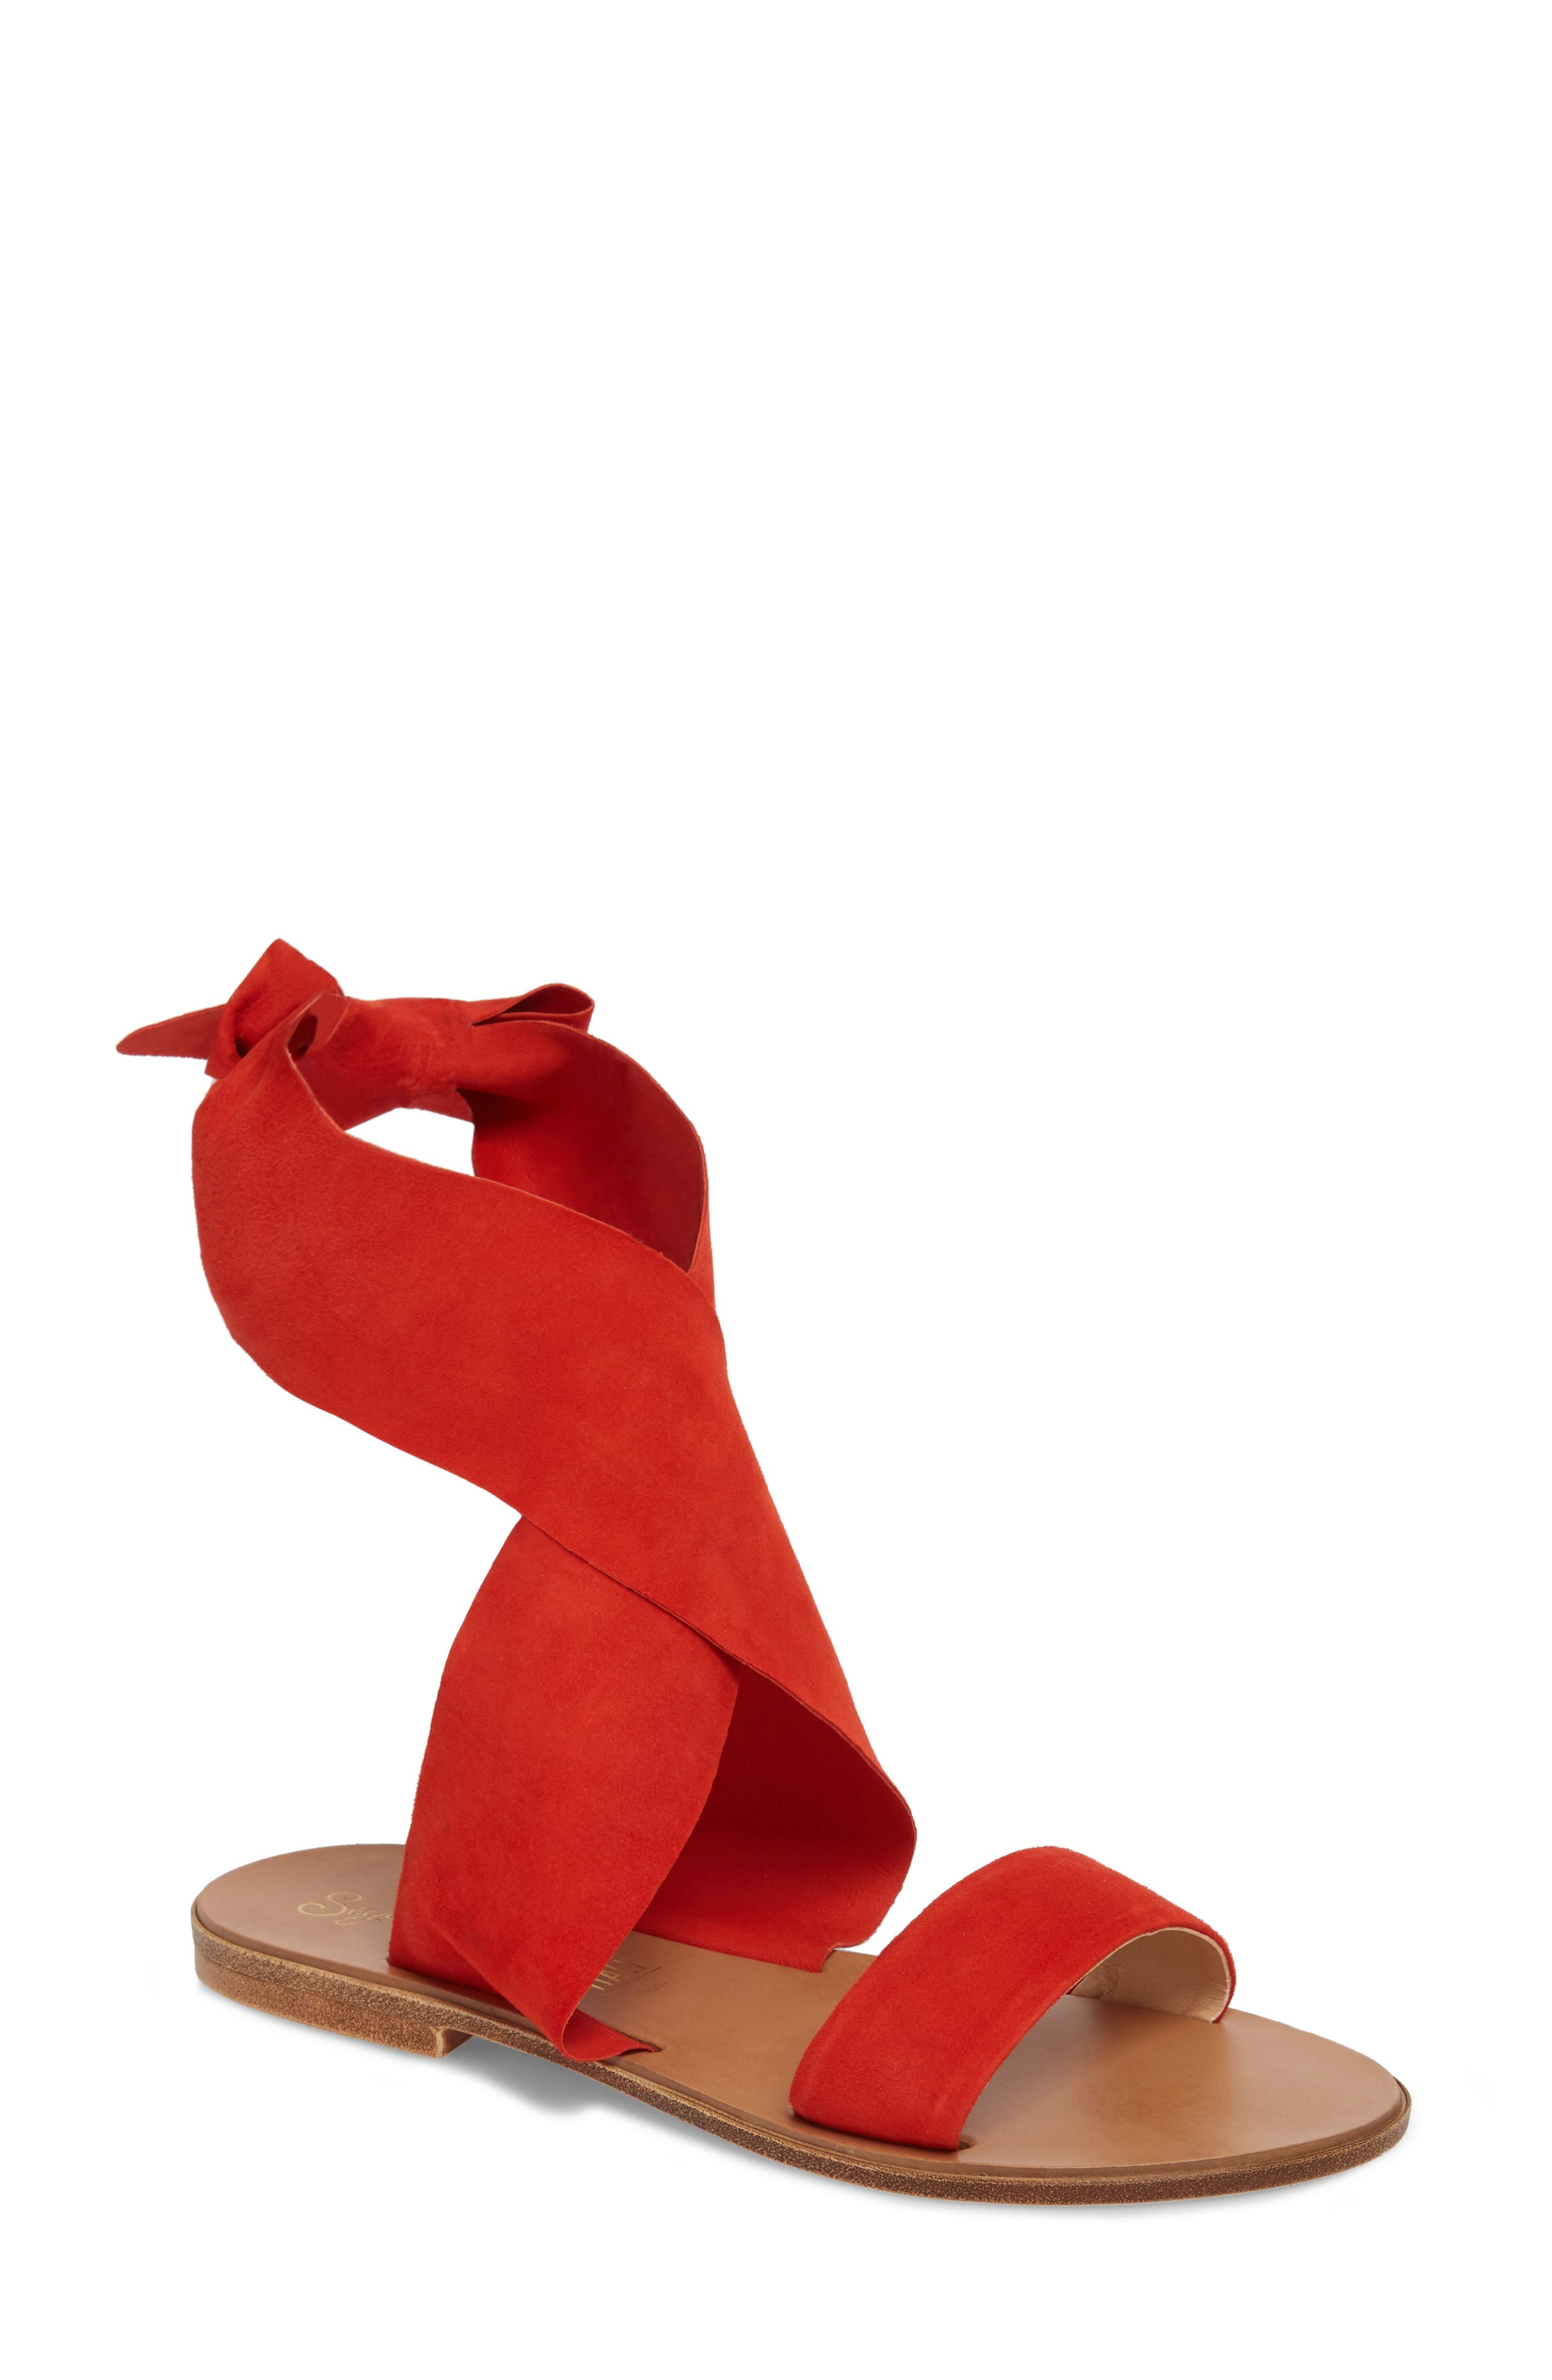 Cruisin Ankle Wrap Sandal,                         Main,                         color, Red Suede